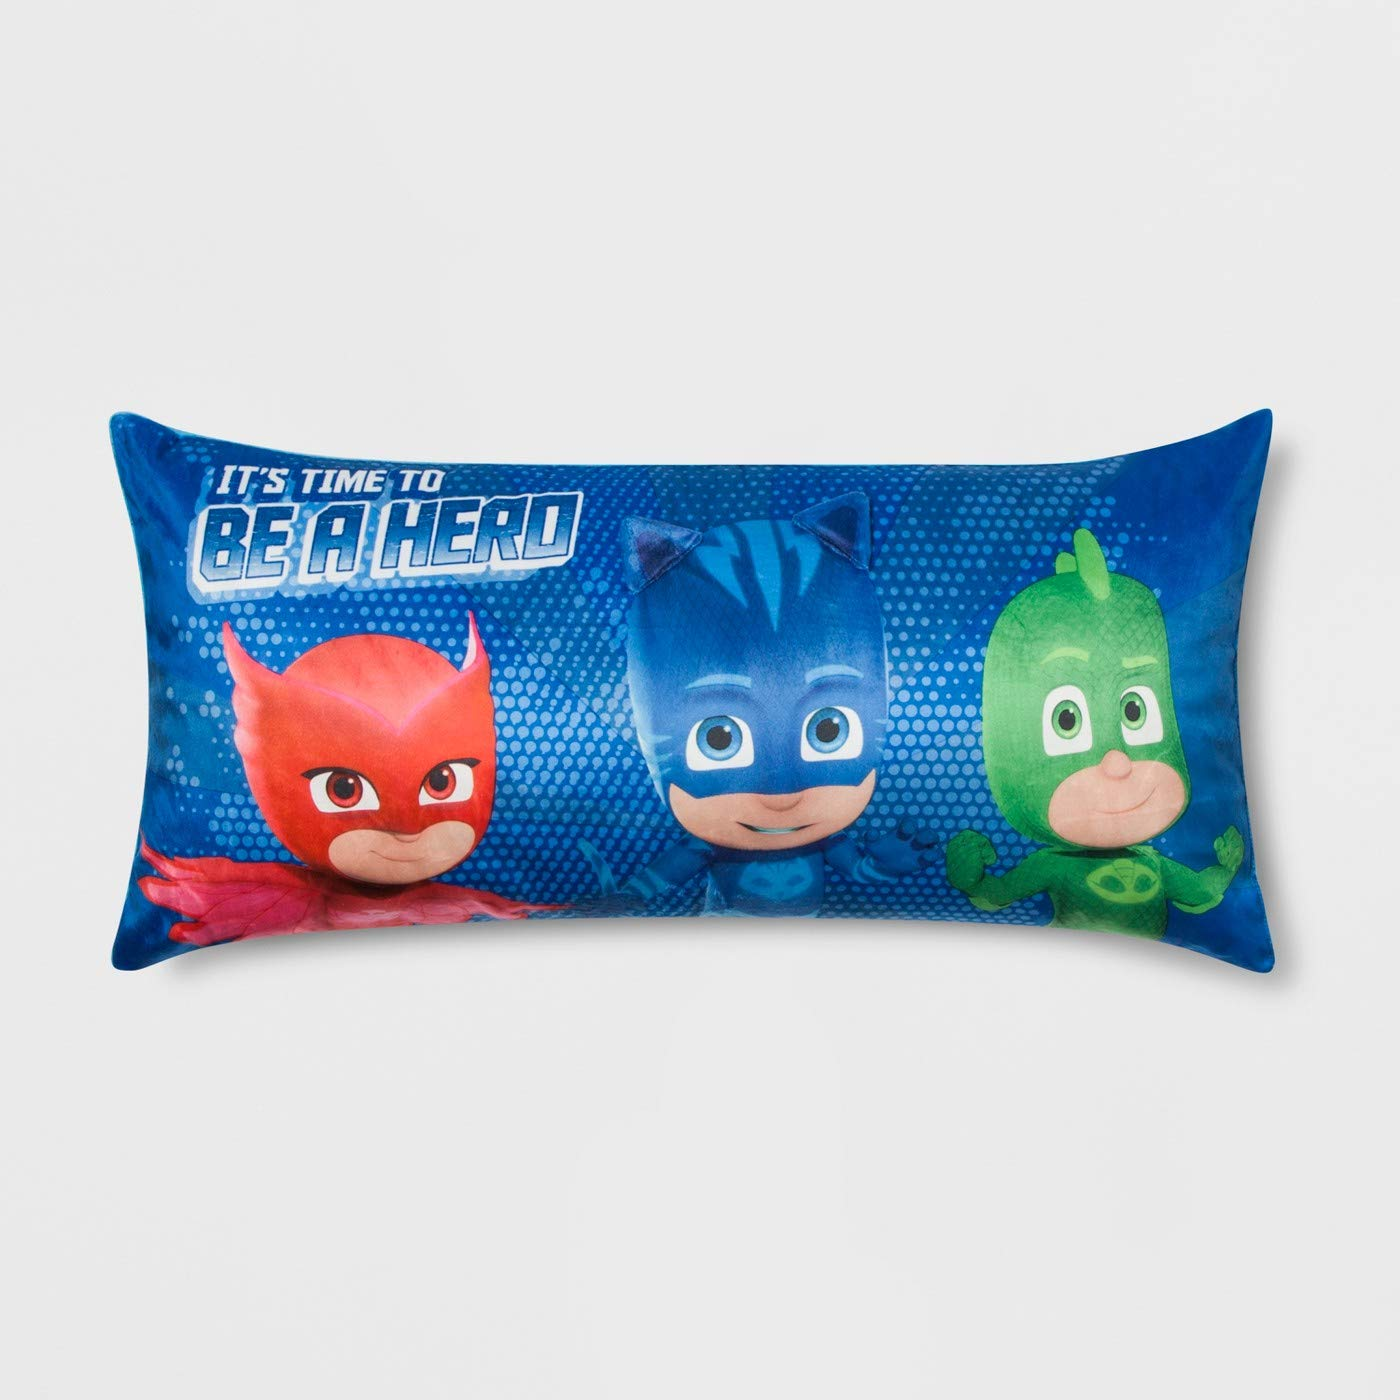 PJ Masks Body Pillow